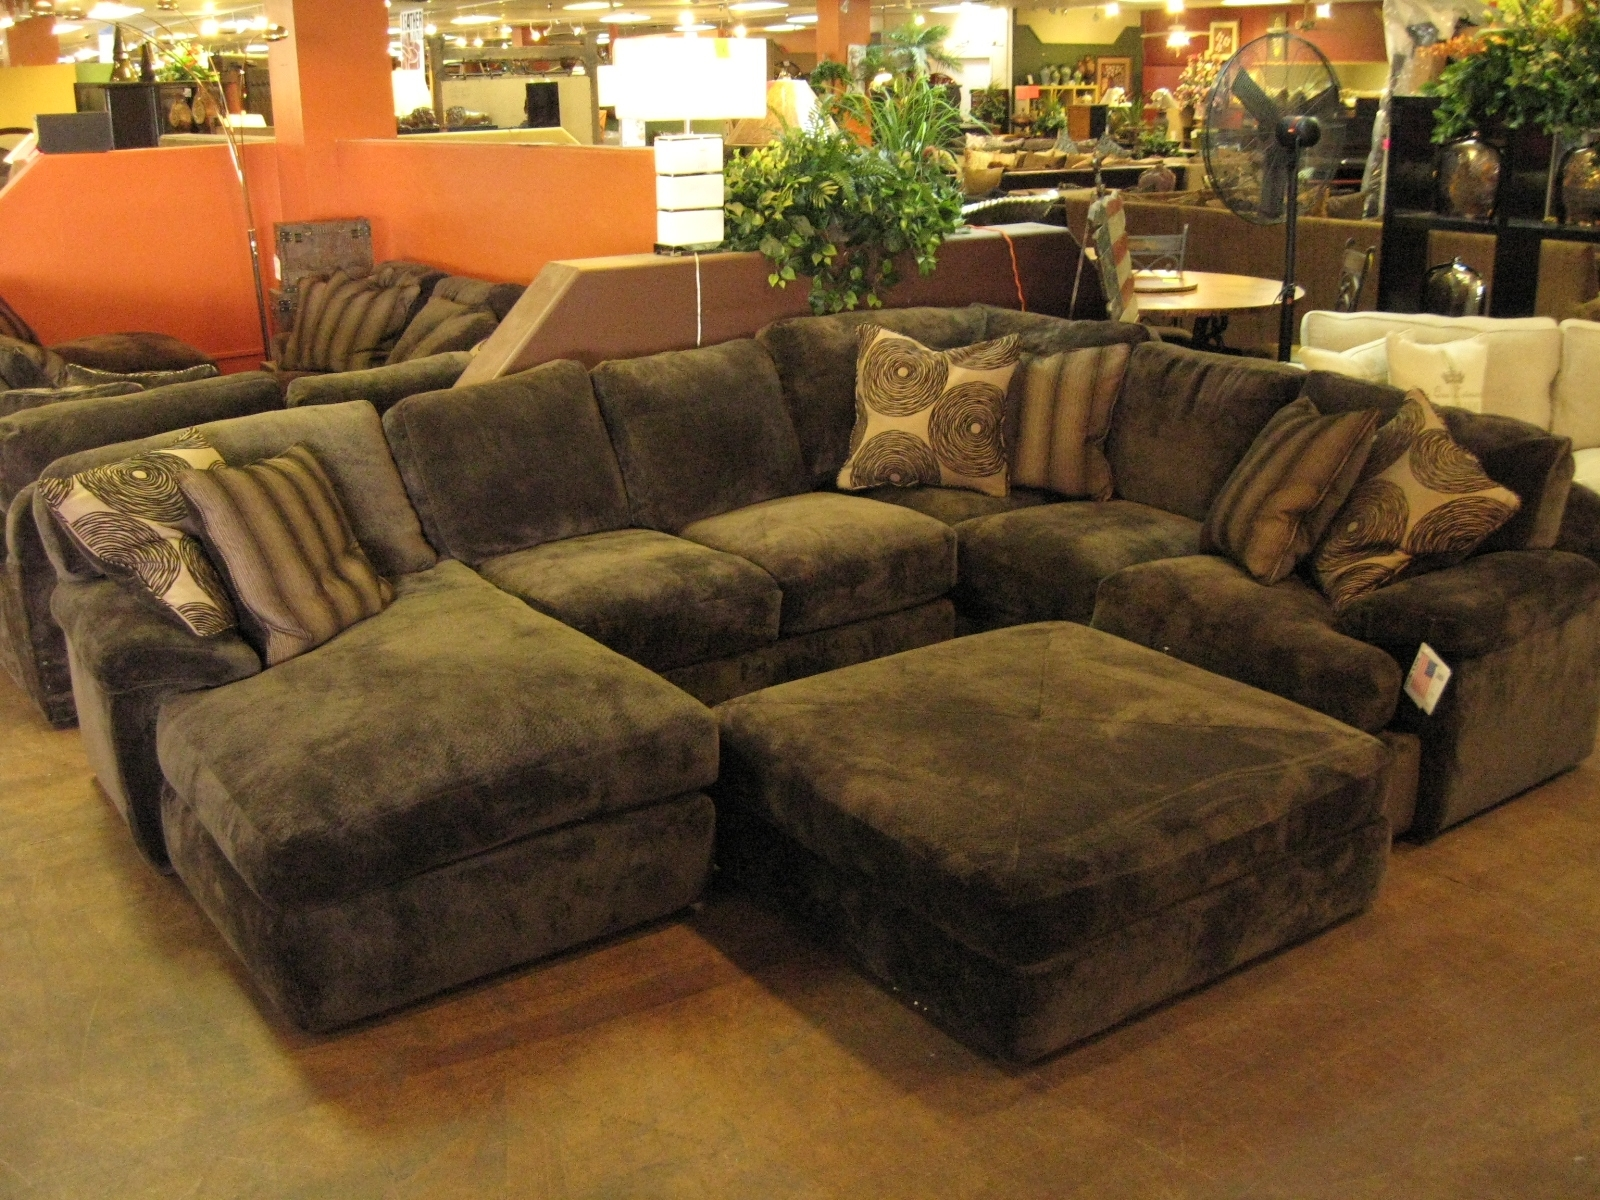 Sofa : 2 Piece Sectional Sofa Where To Buy Sectionals Small Within Small Sectional Sofas With Chaise And Ottoman (View 13 of 15)